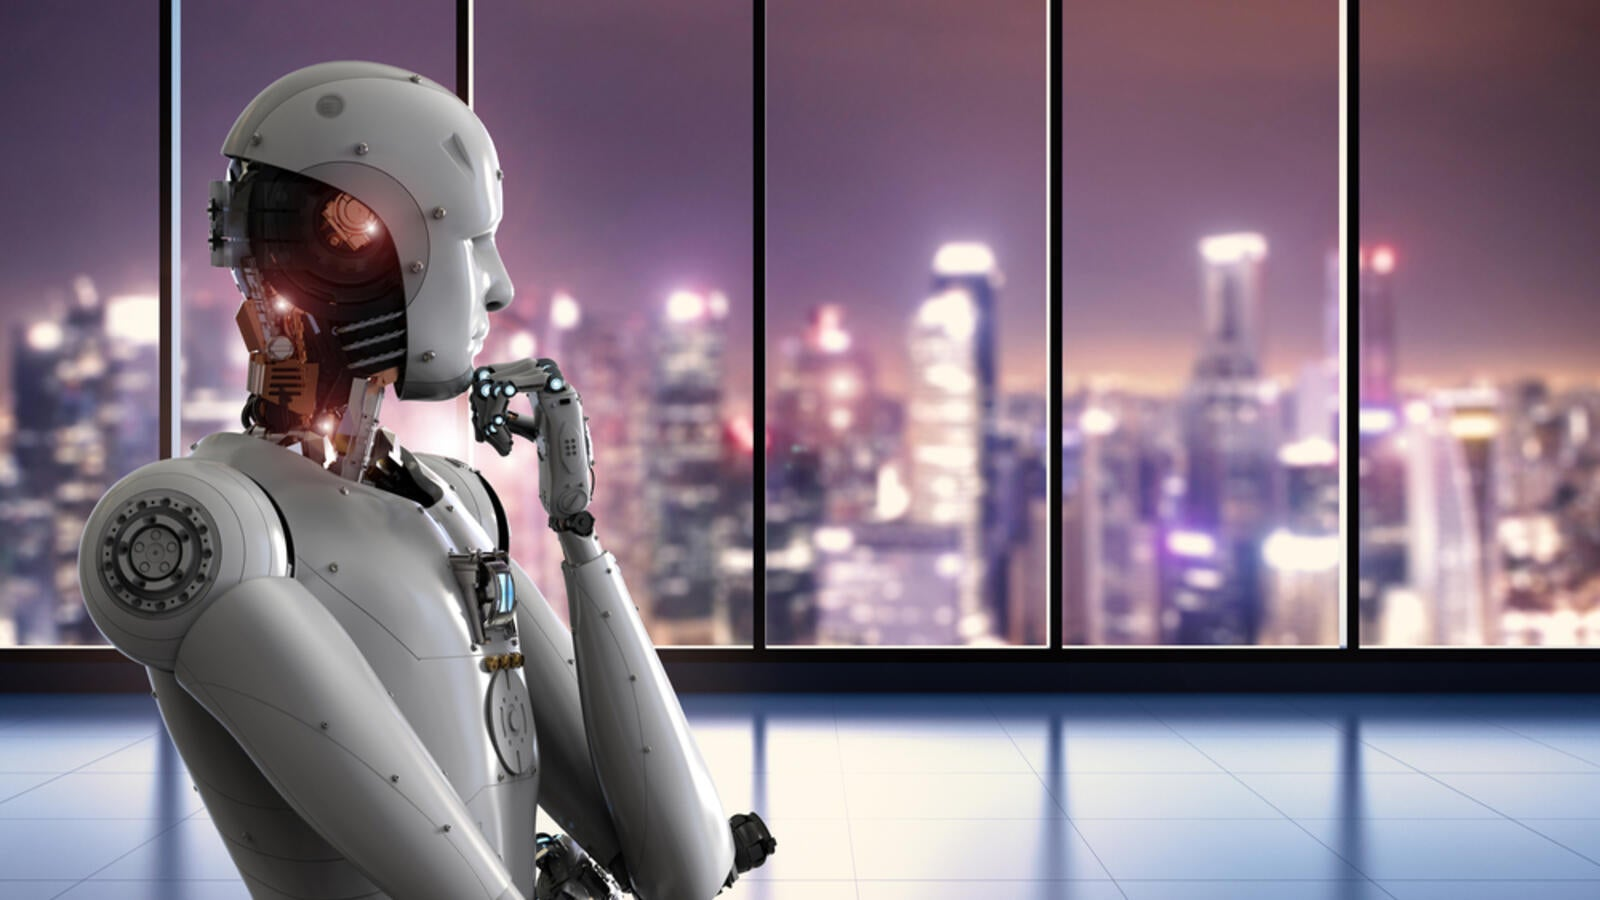 This is the World's First Robot Employment Agency